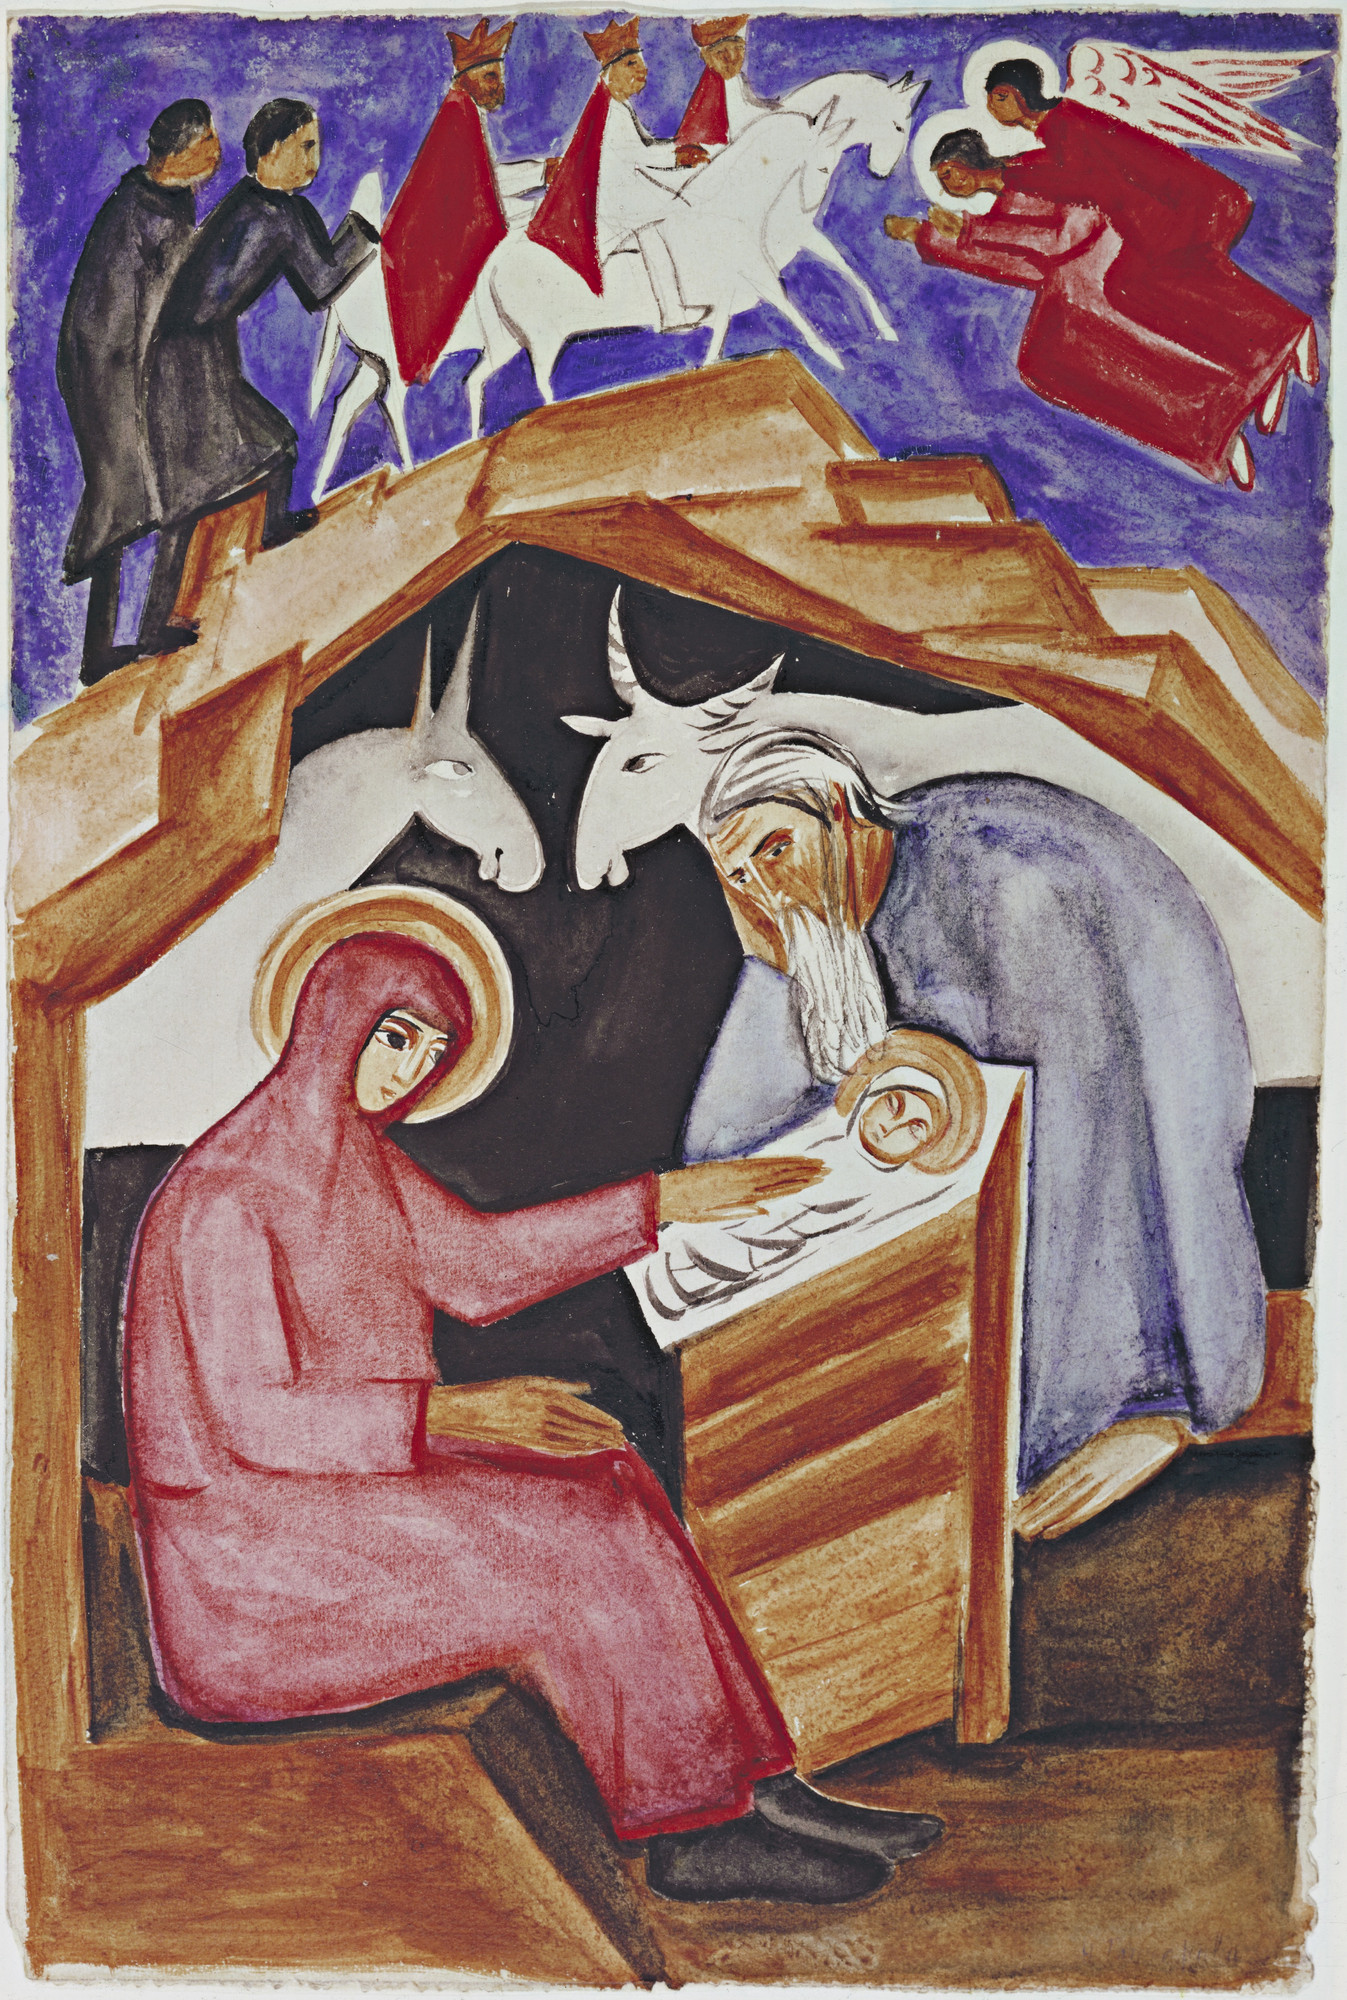 Natalia Goncharova. The Nativity, for Liturgy. (1915)